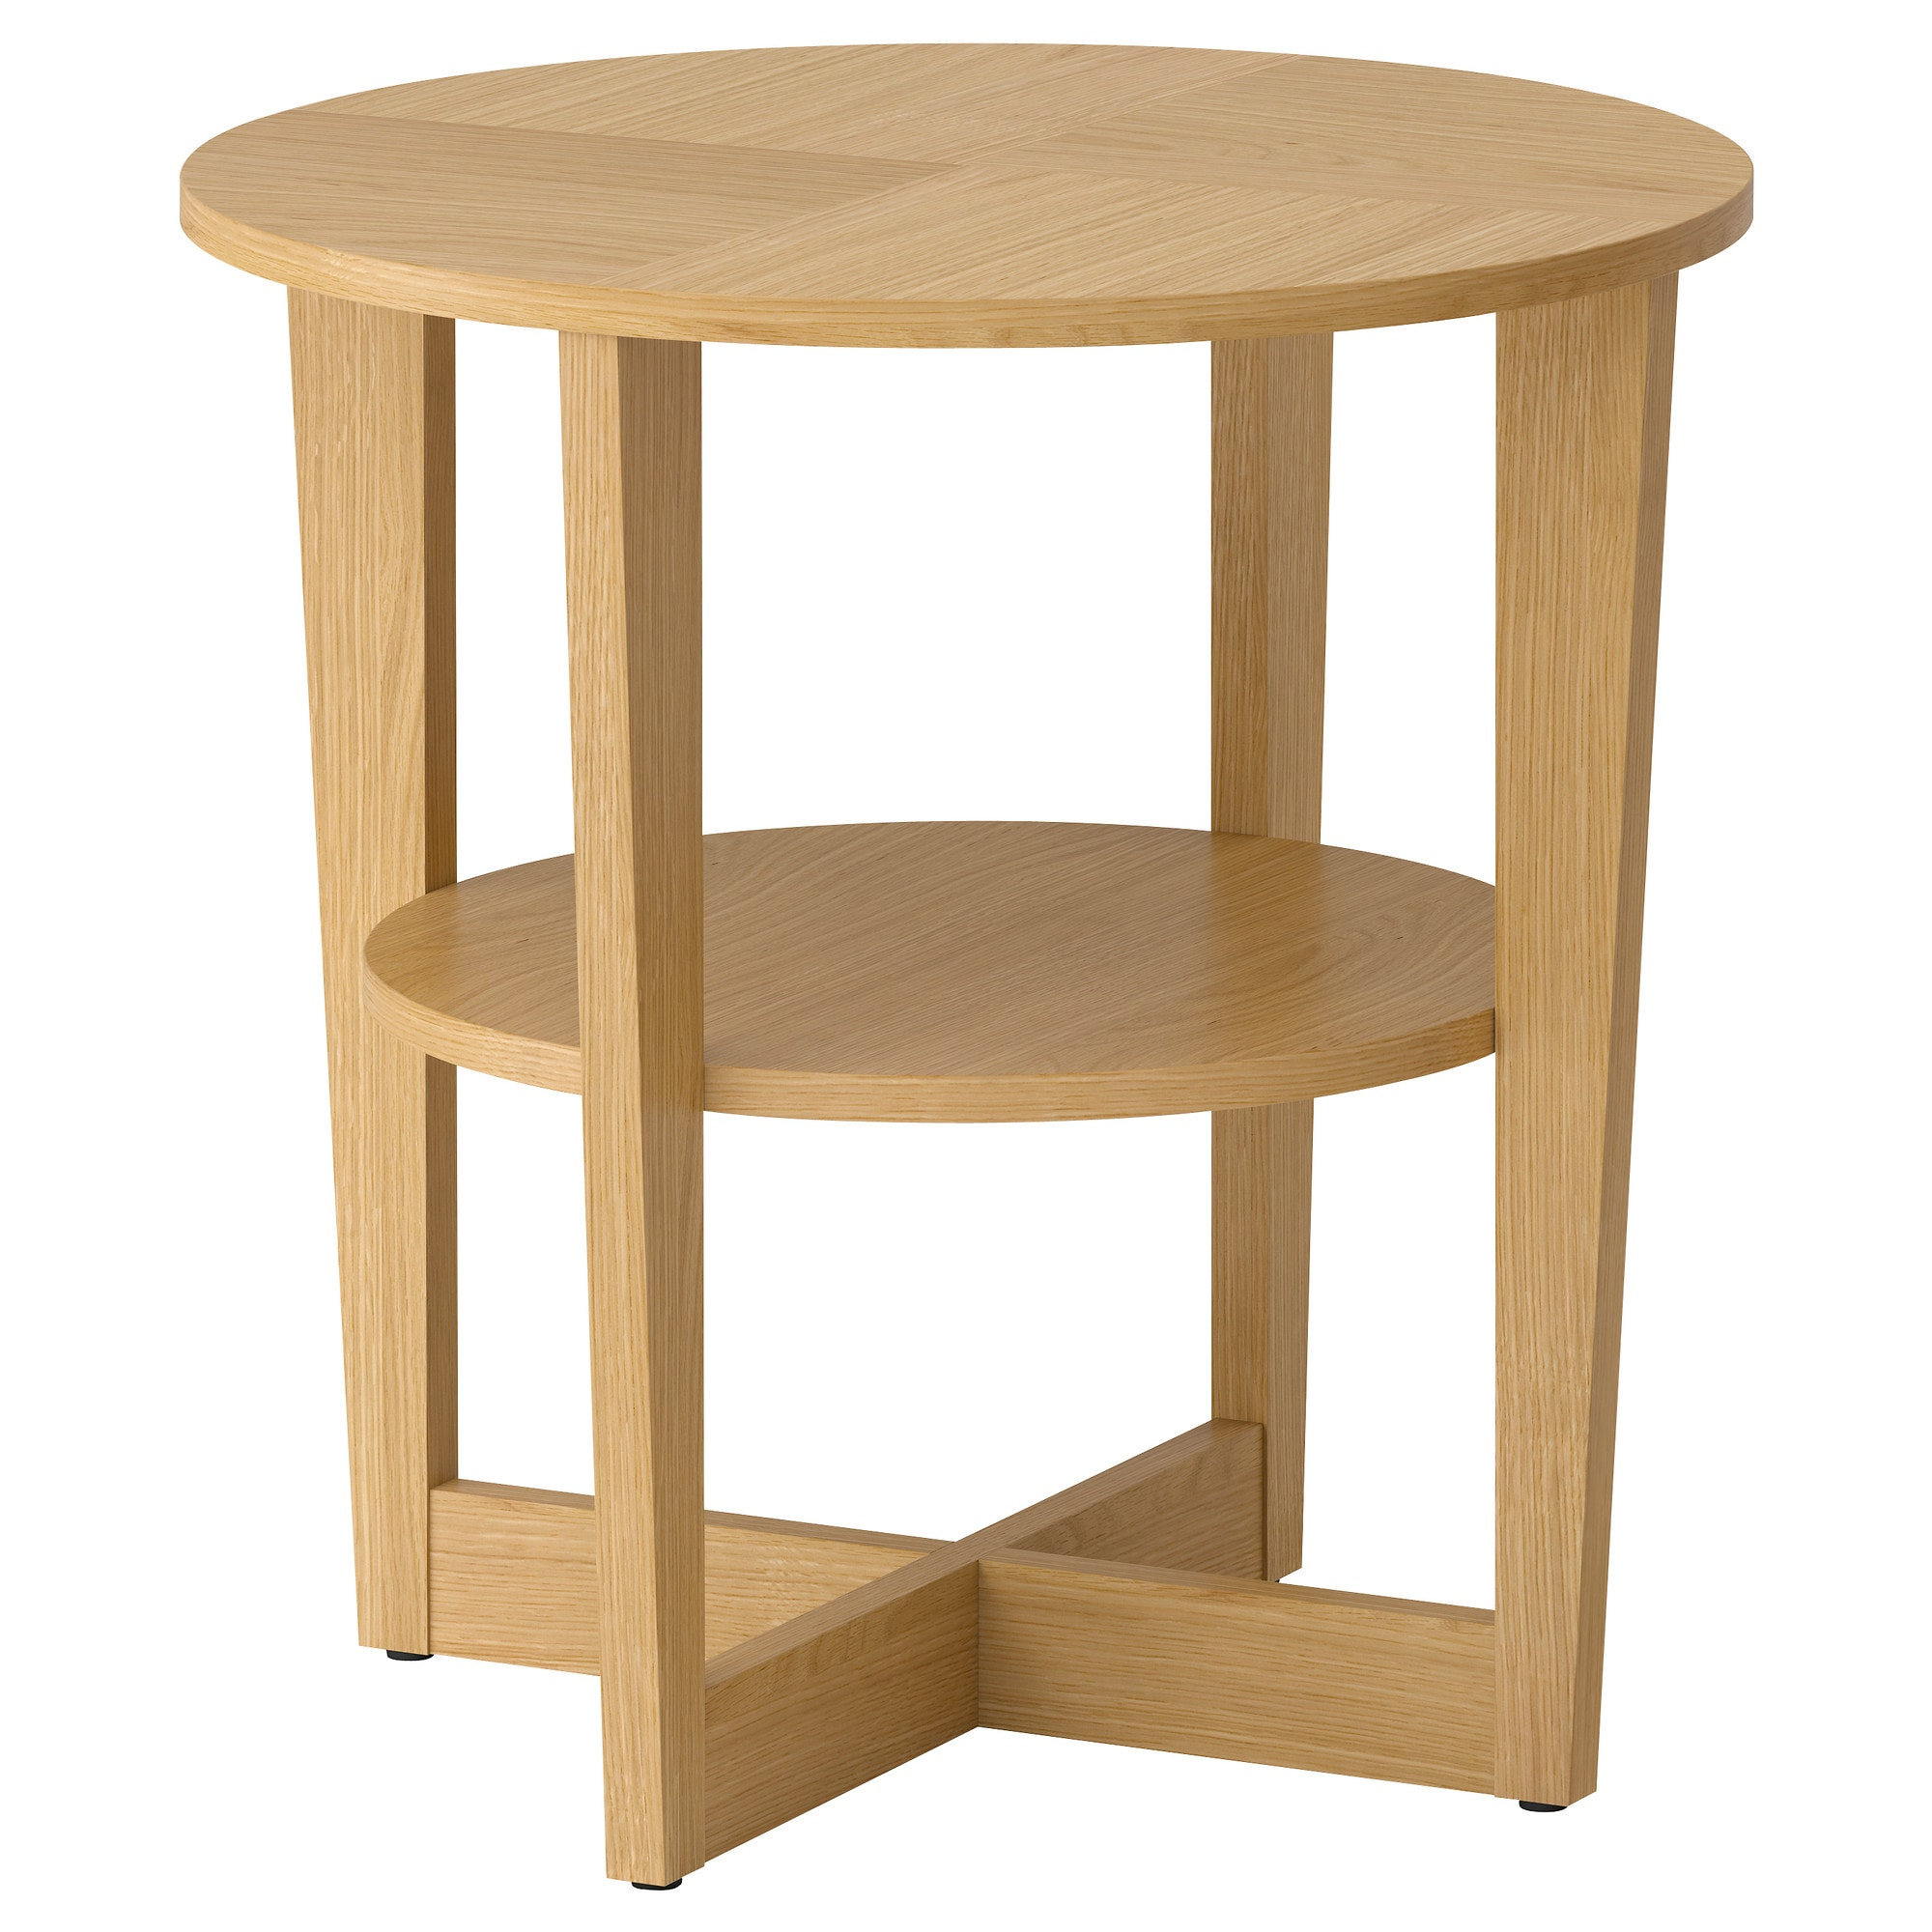 occasional tables tray storage window ikea vejmon side table oak veneer red round accent the veneered surface durable stain resistant and easy keep nautical lighting ideas